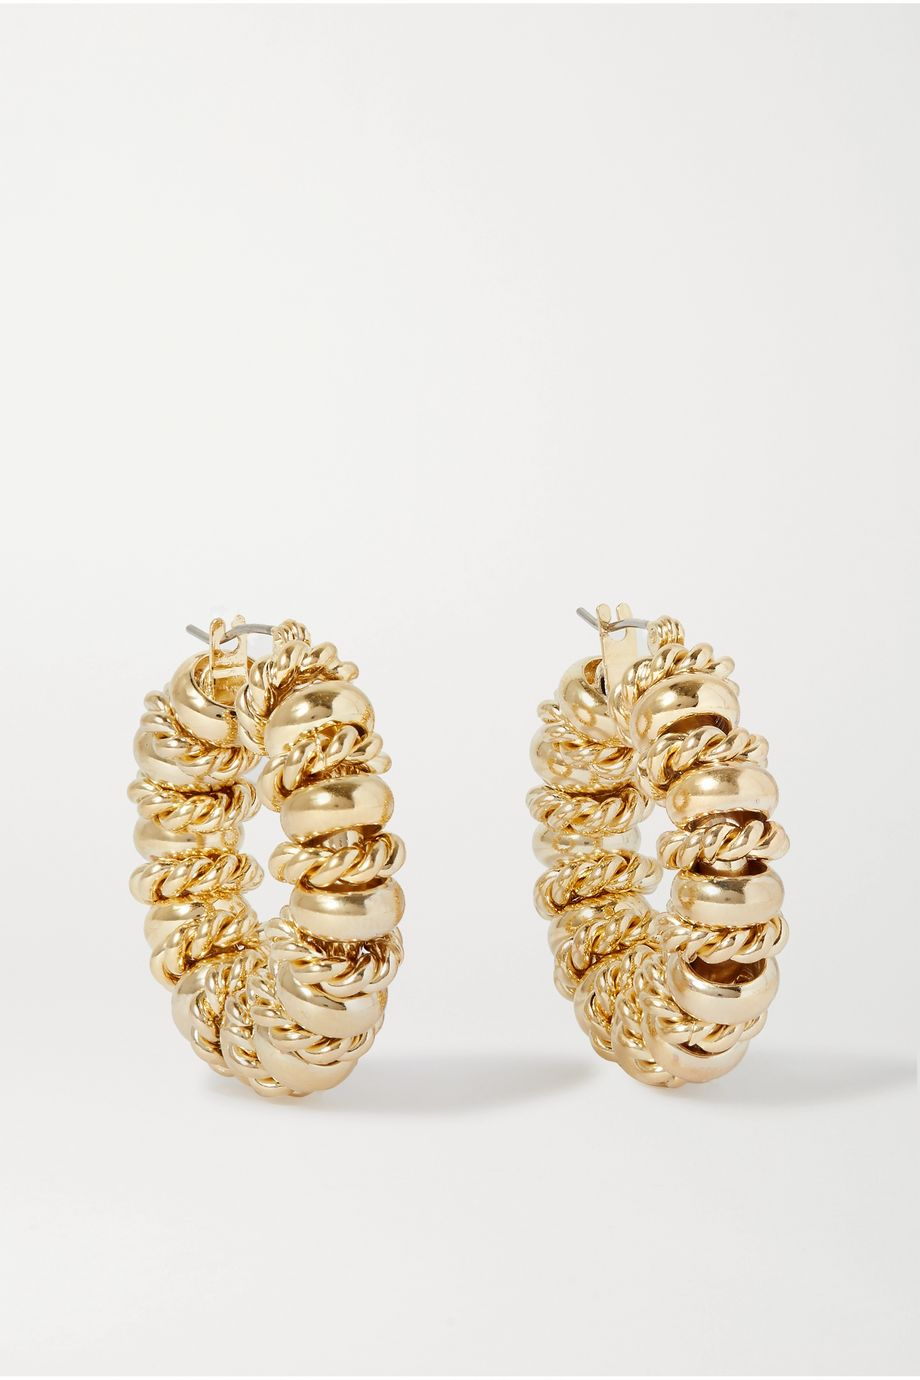 Laura Lombardi + NET SUSTAIN Serena gold-plated hoop earrings